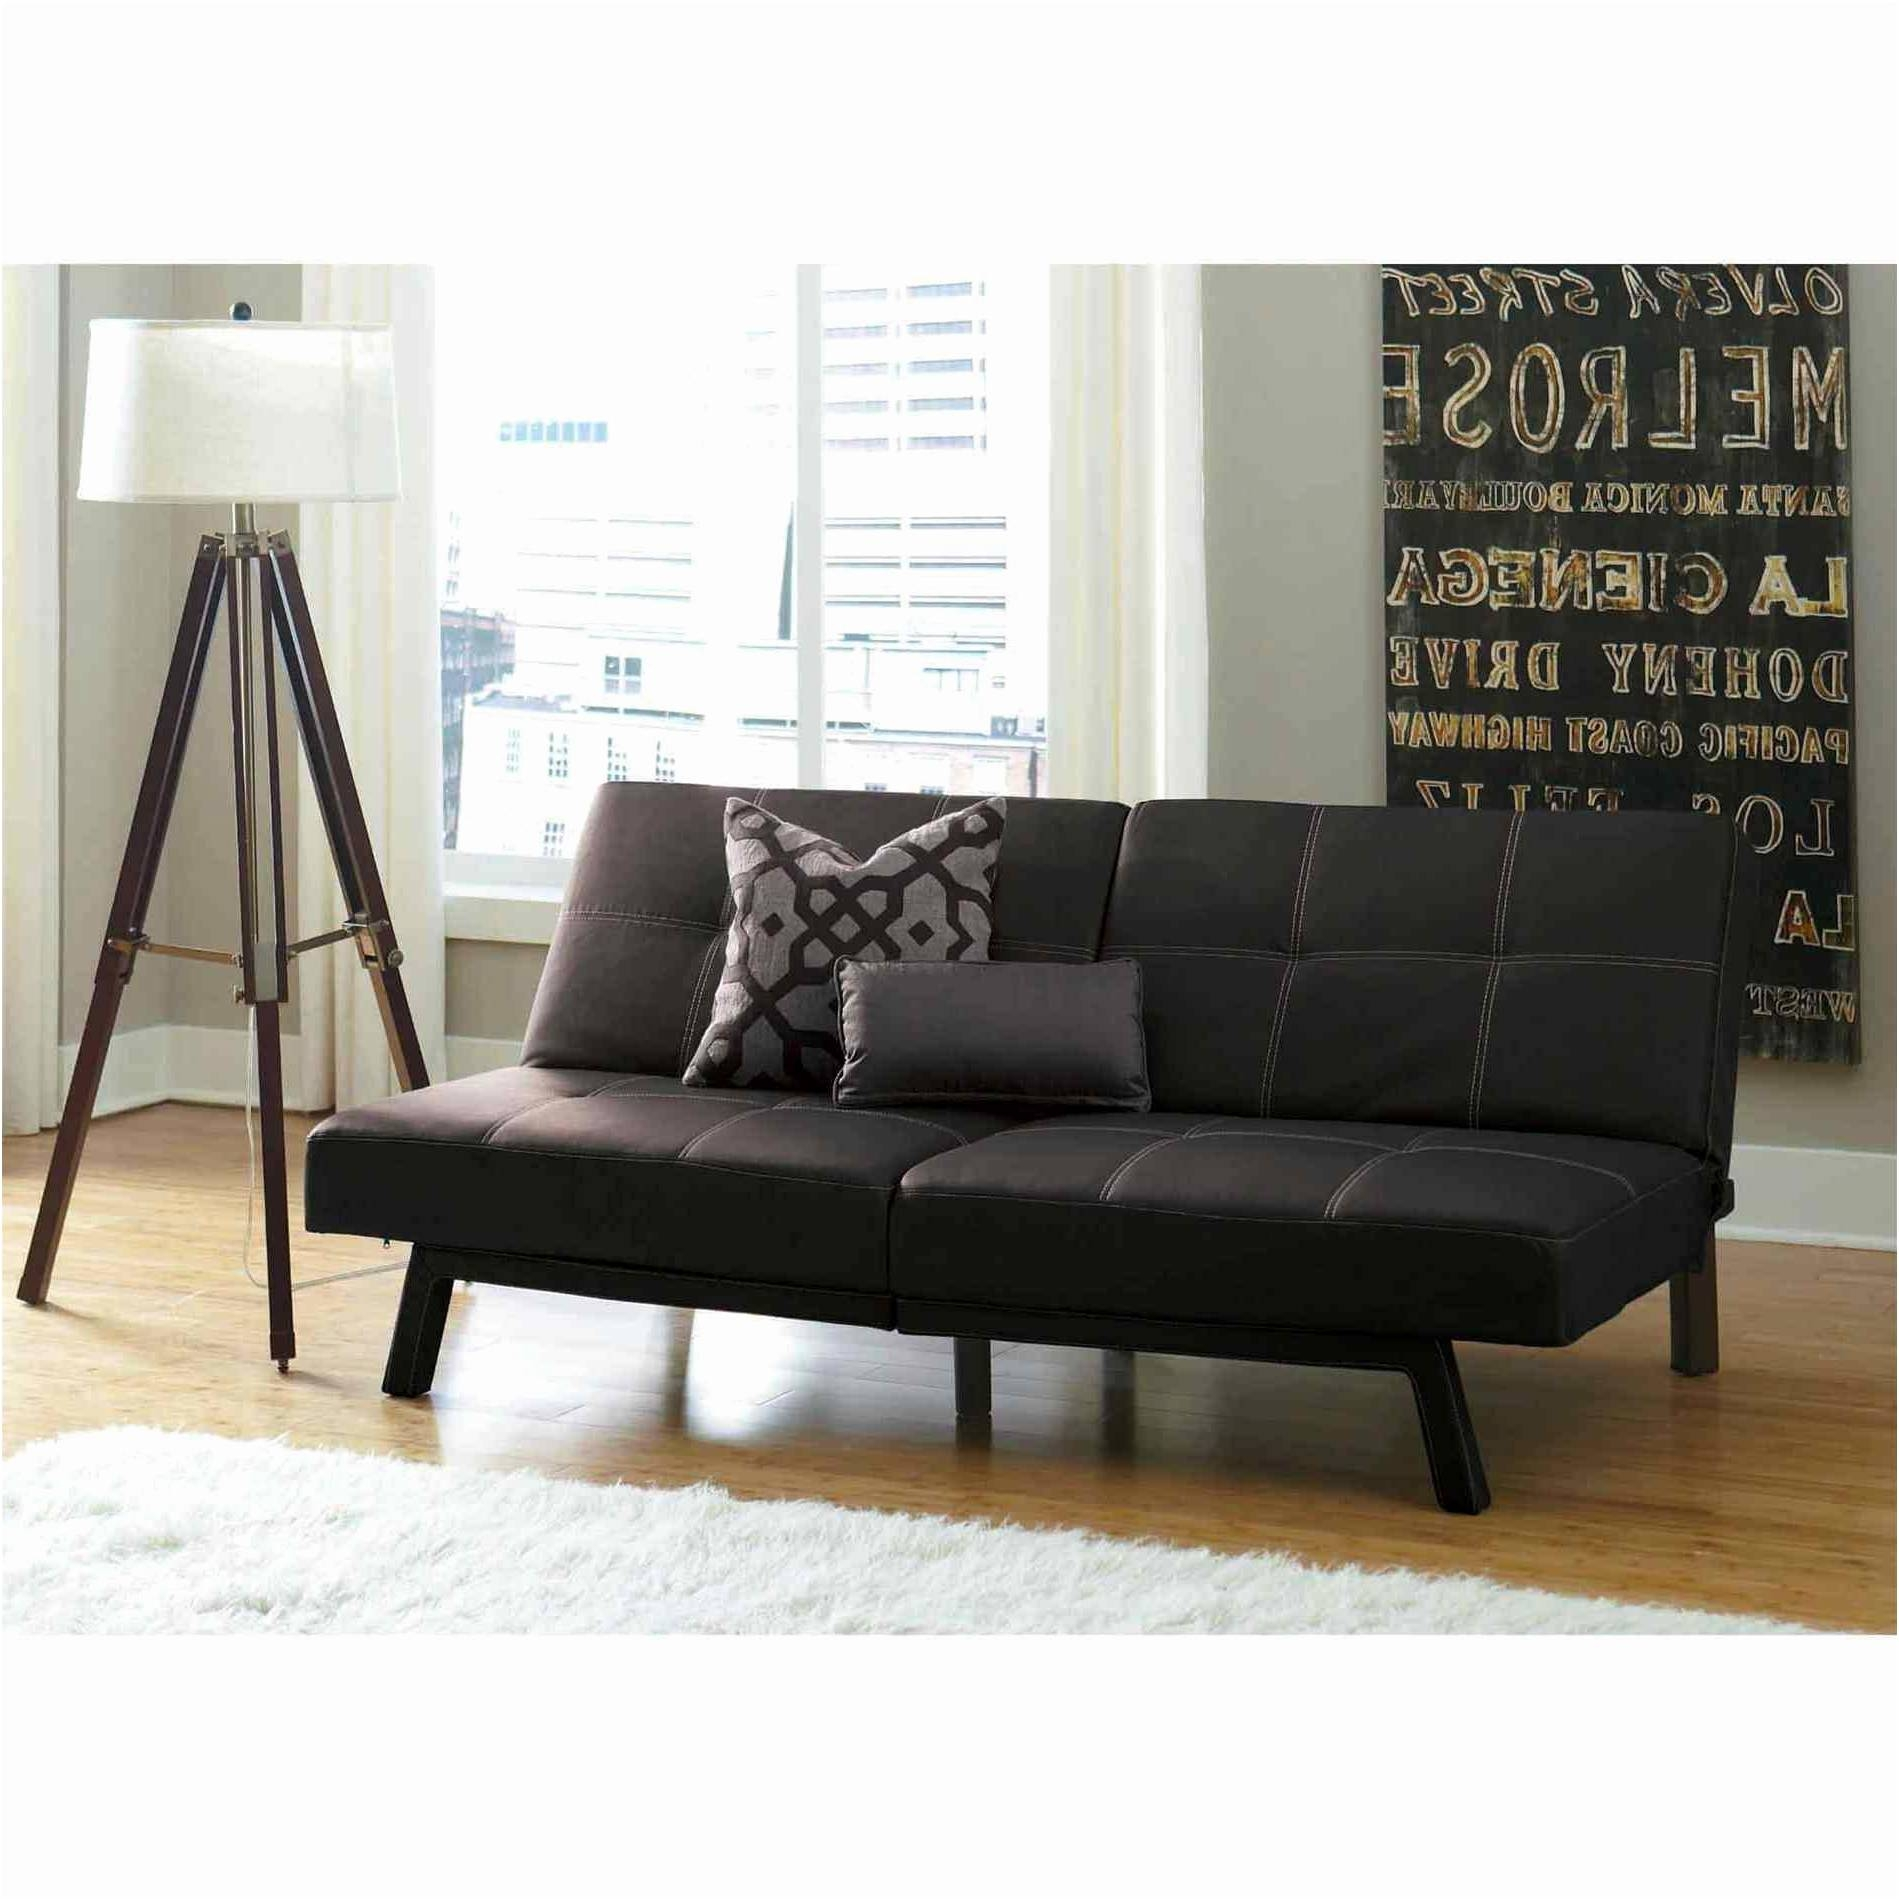 Small Scale Sofas Elegant Which Ikea 2 Seater Sofa Is This   Sofa Inside Small Scale Sofas (Photo 14 of 15)